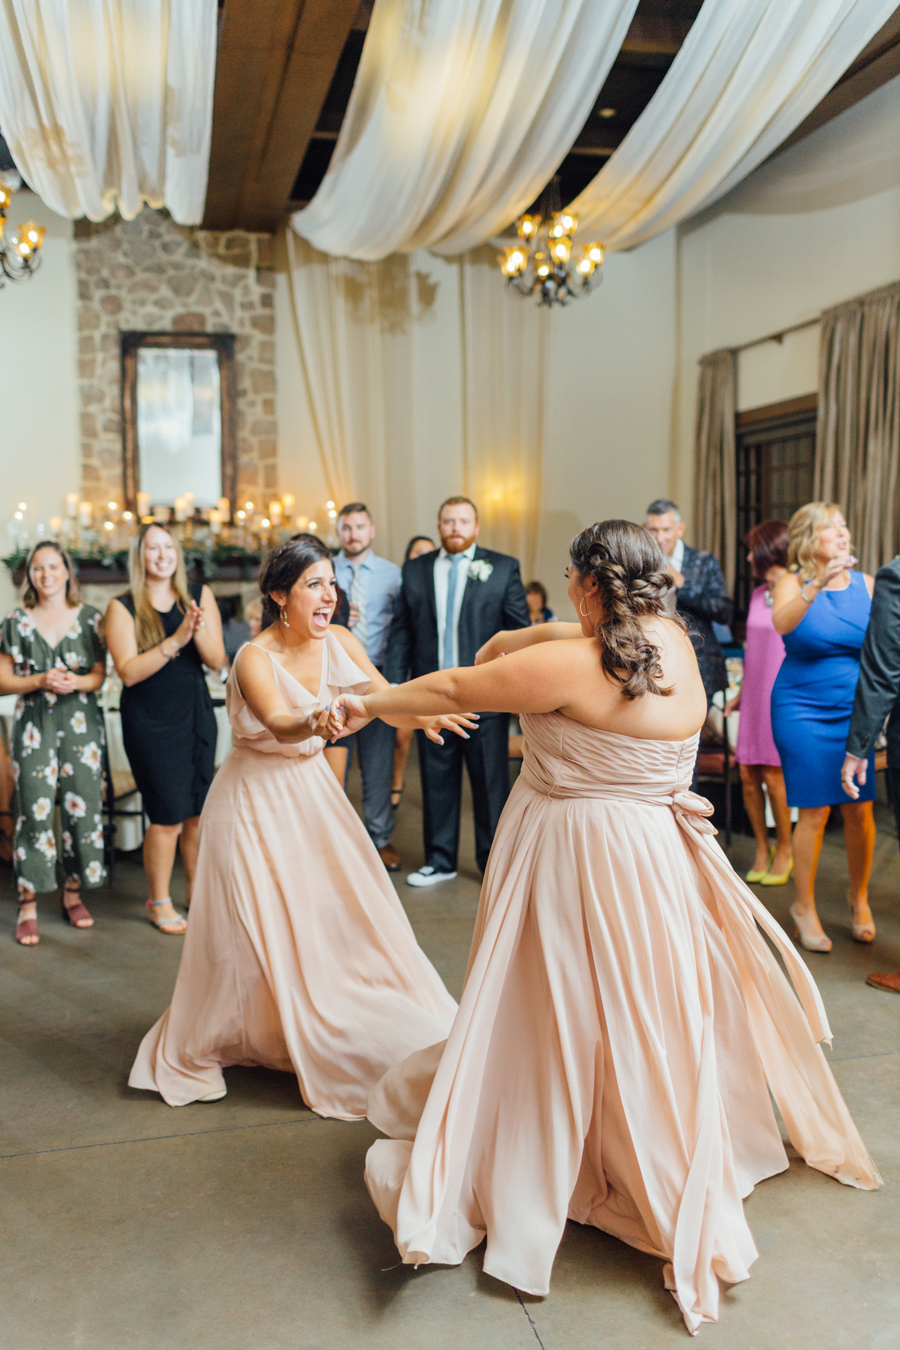 the-inn-at-leola-wedding-lancaster-pennsylvania-wedding-photographer-rebeka-viola-photograhy (132).jpg